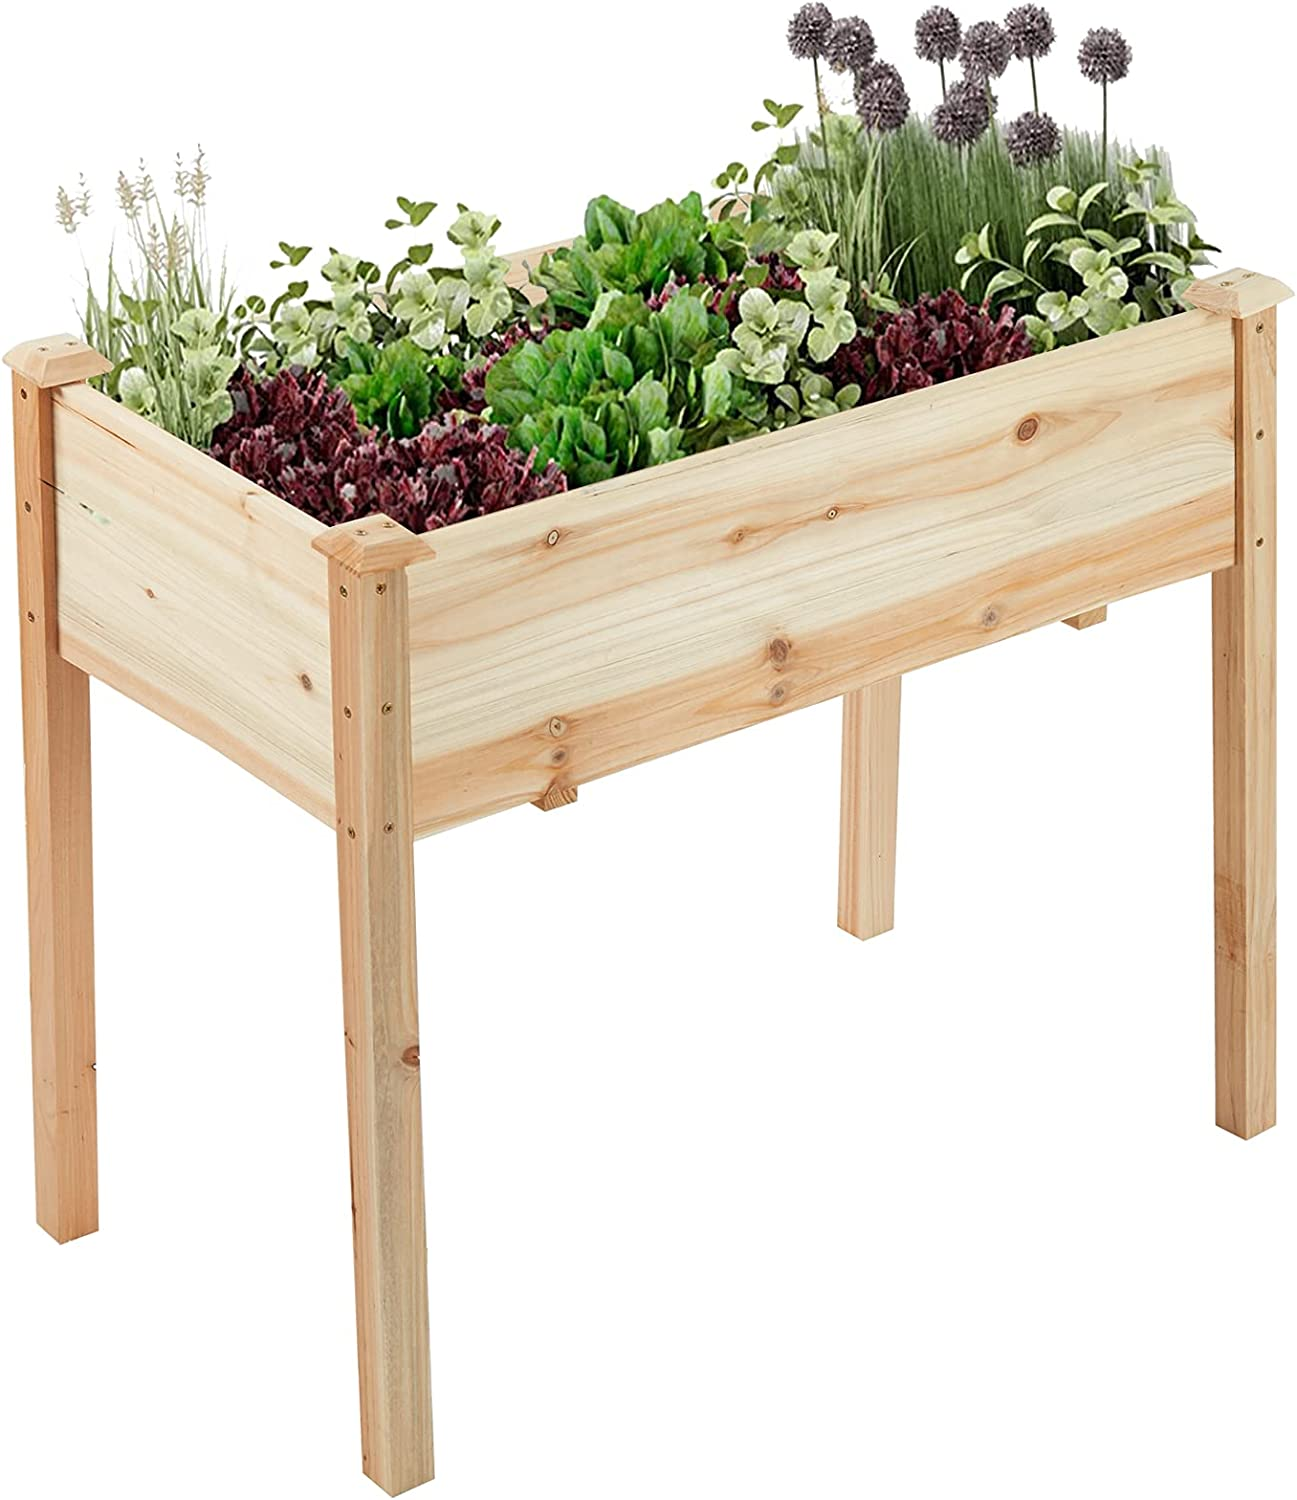 Garden 2021 new Raised Bed 33.2x17.7x29.33 inch Wood A surprise price is realized Box Natural Planter